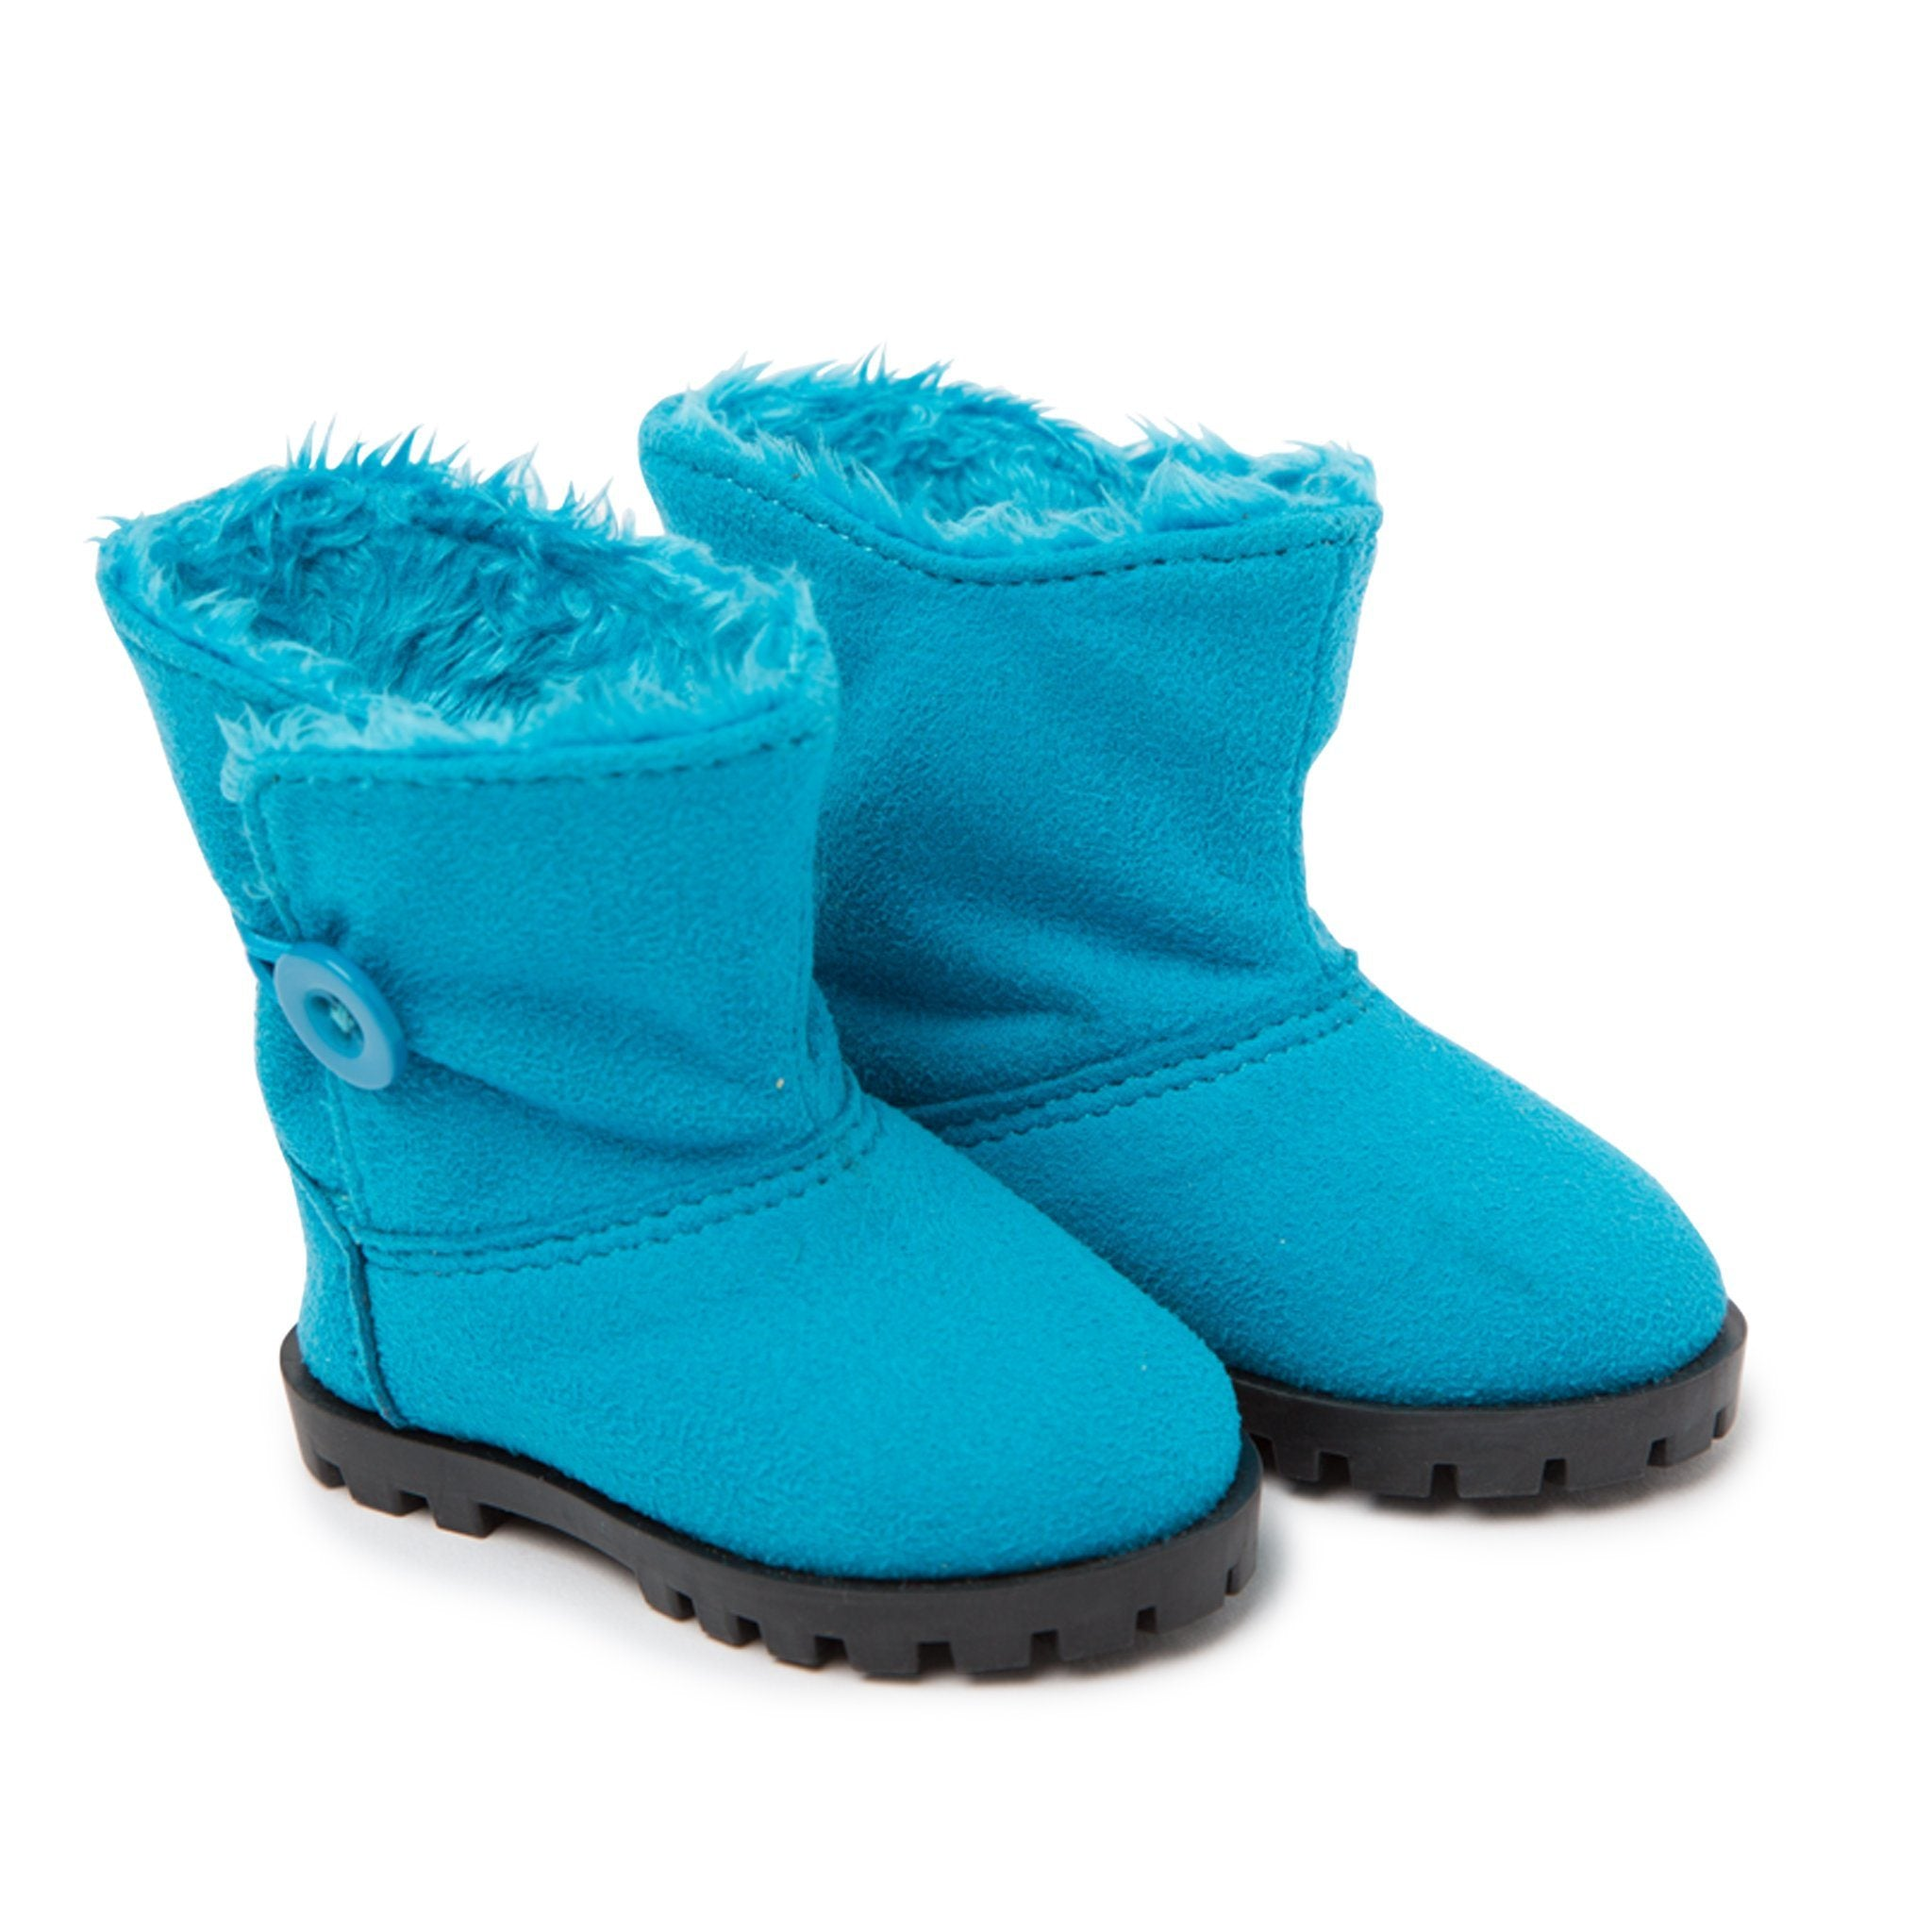 Weekend at Whistler blue fuzzy winter boots fit all 18 inch dolls.